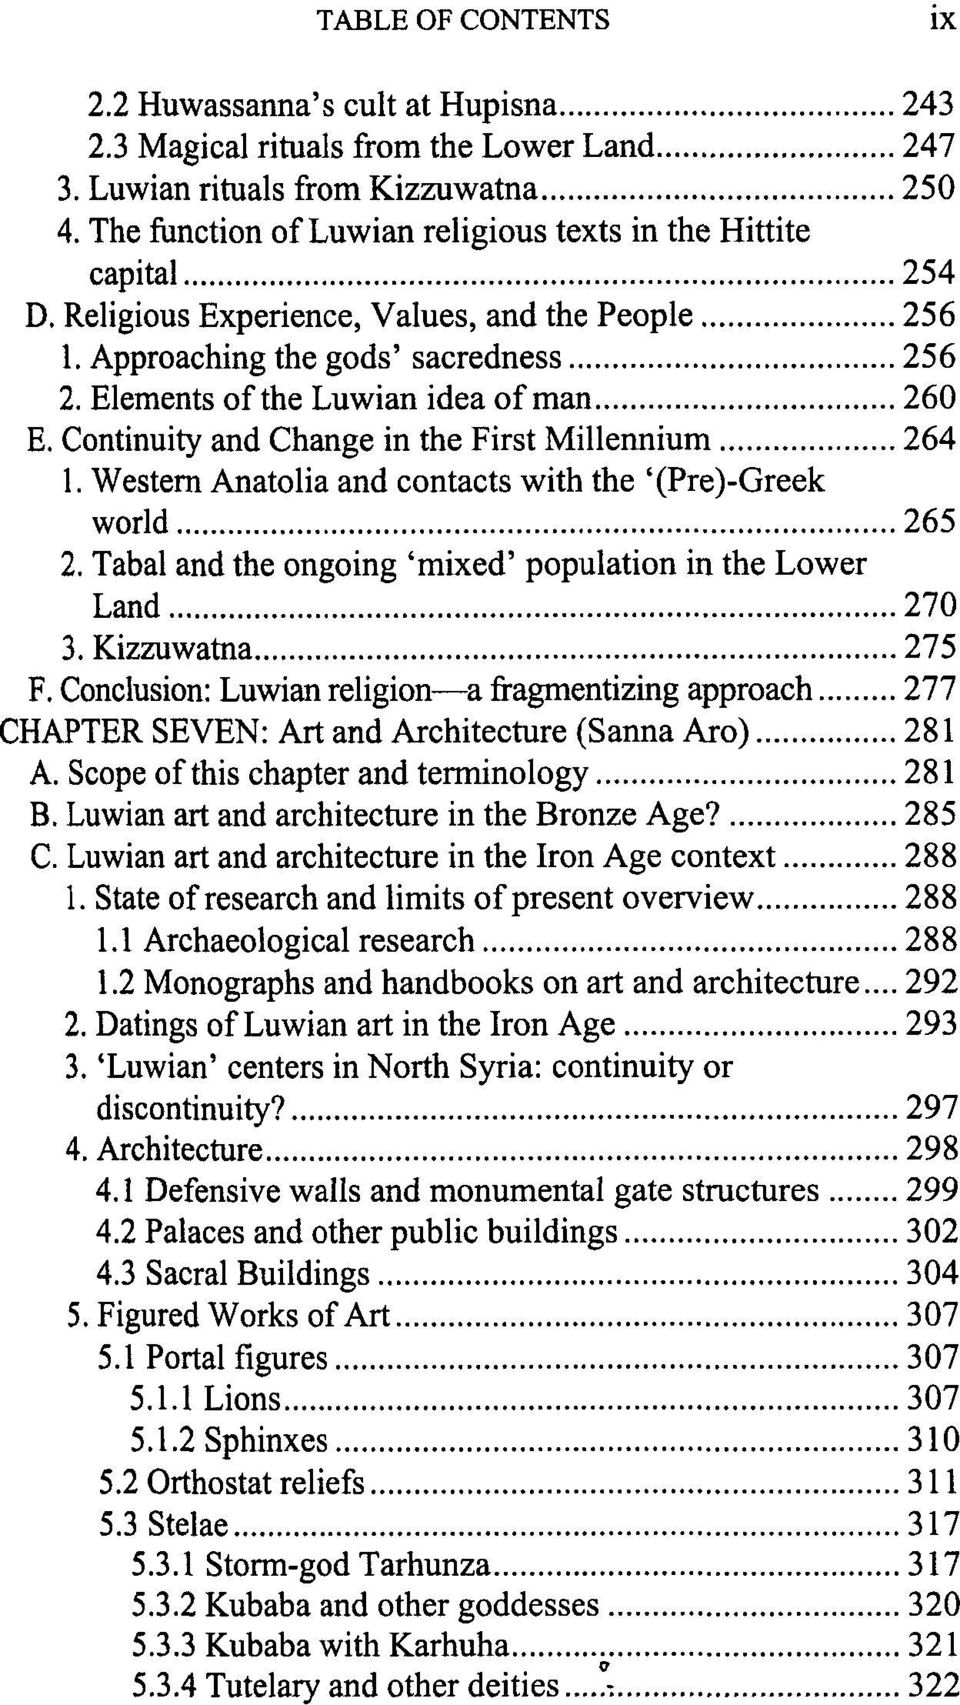 Elements of the Luwian idea of man 260 E. Continuity and Change in the First Millennium 264 1. Western Anatolia and contacts with the '(Pre)-Greek world 265 2.